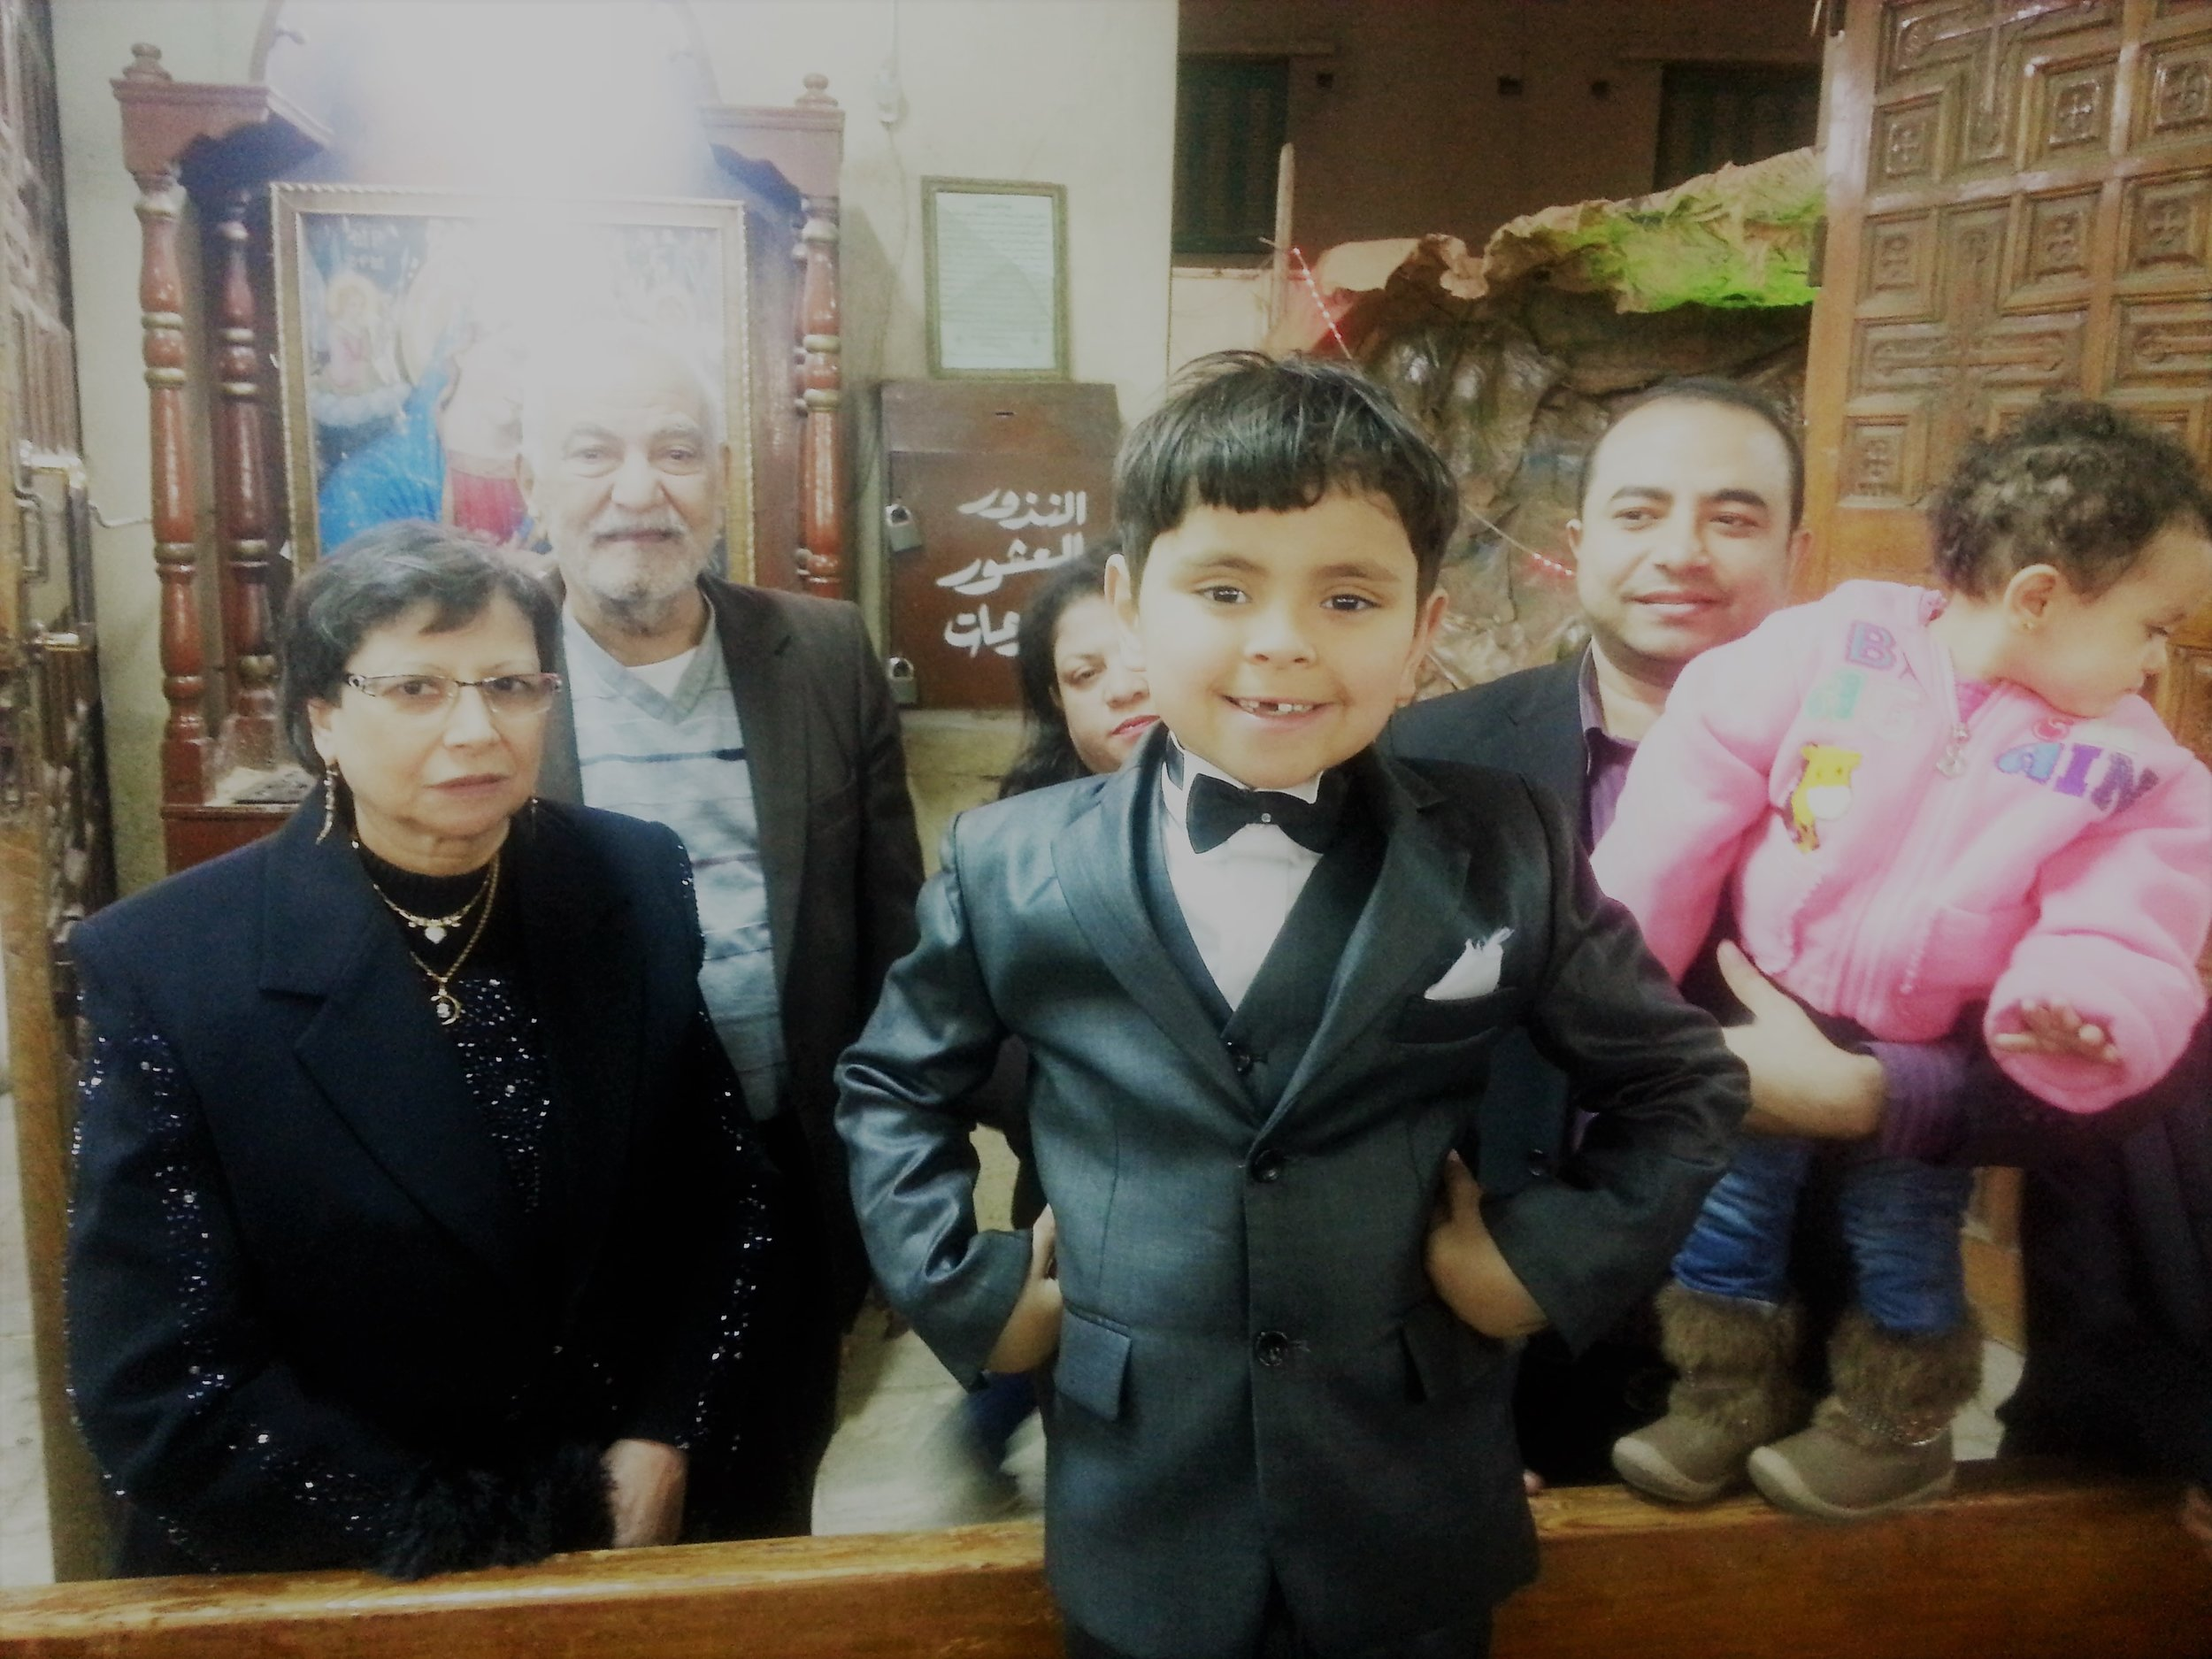 Pictured : Dream Kid  Tony  has always spoken with his grandparents over Skype. His dream was to travel to Egypt so that he could give them a hug in person. It was the trip of a lifetime for Tony and his family!